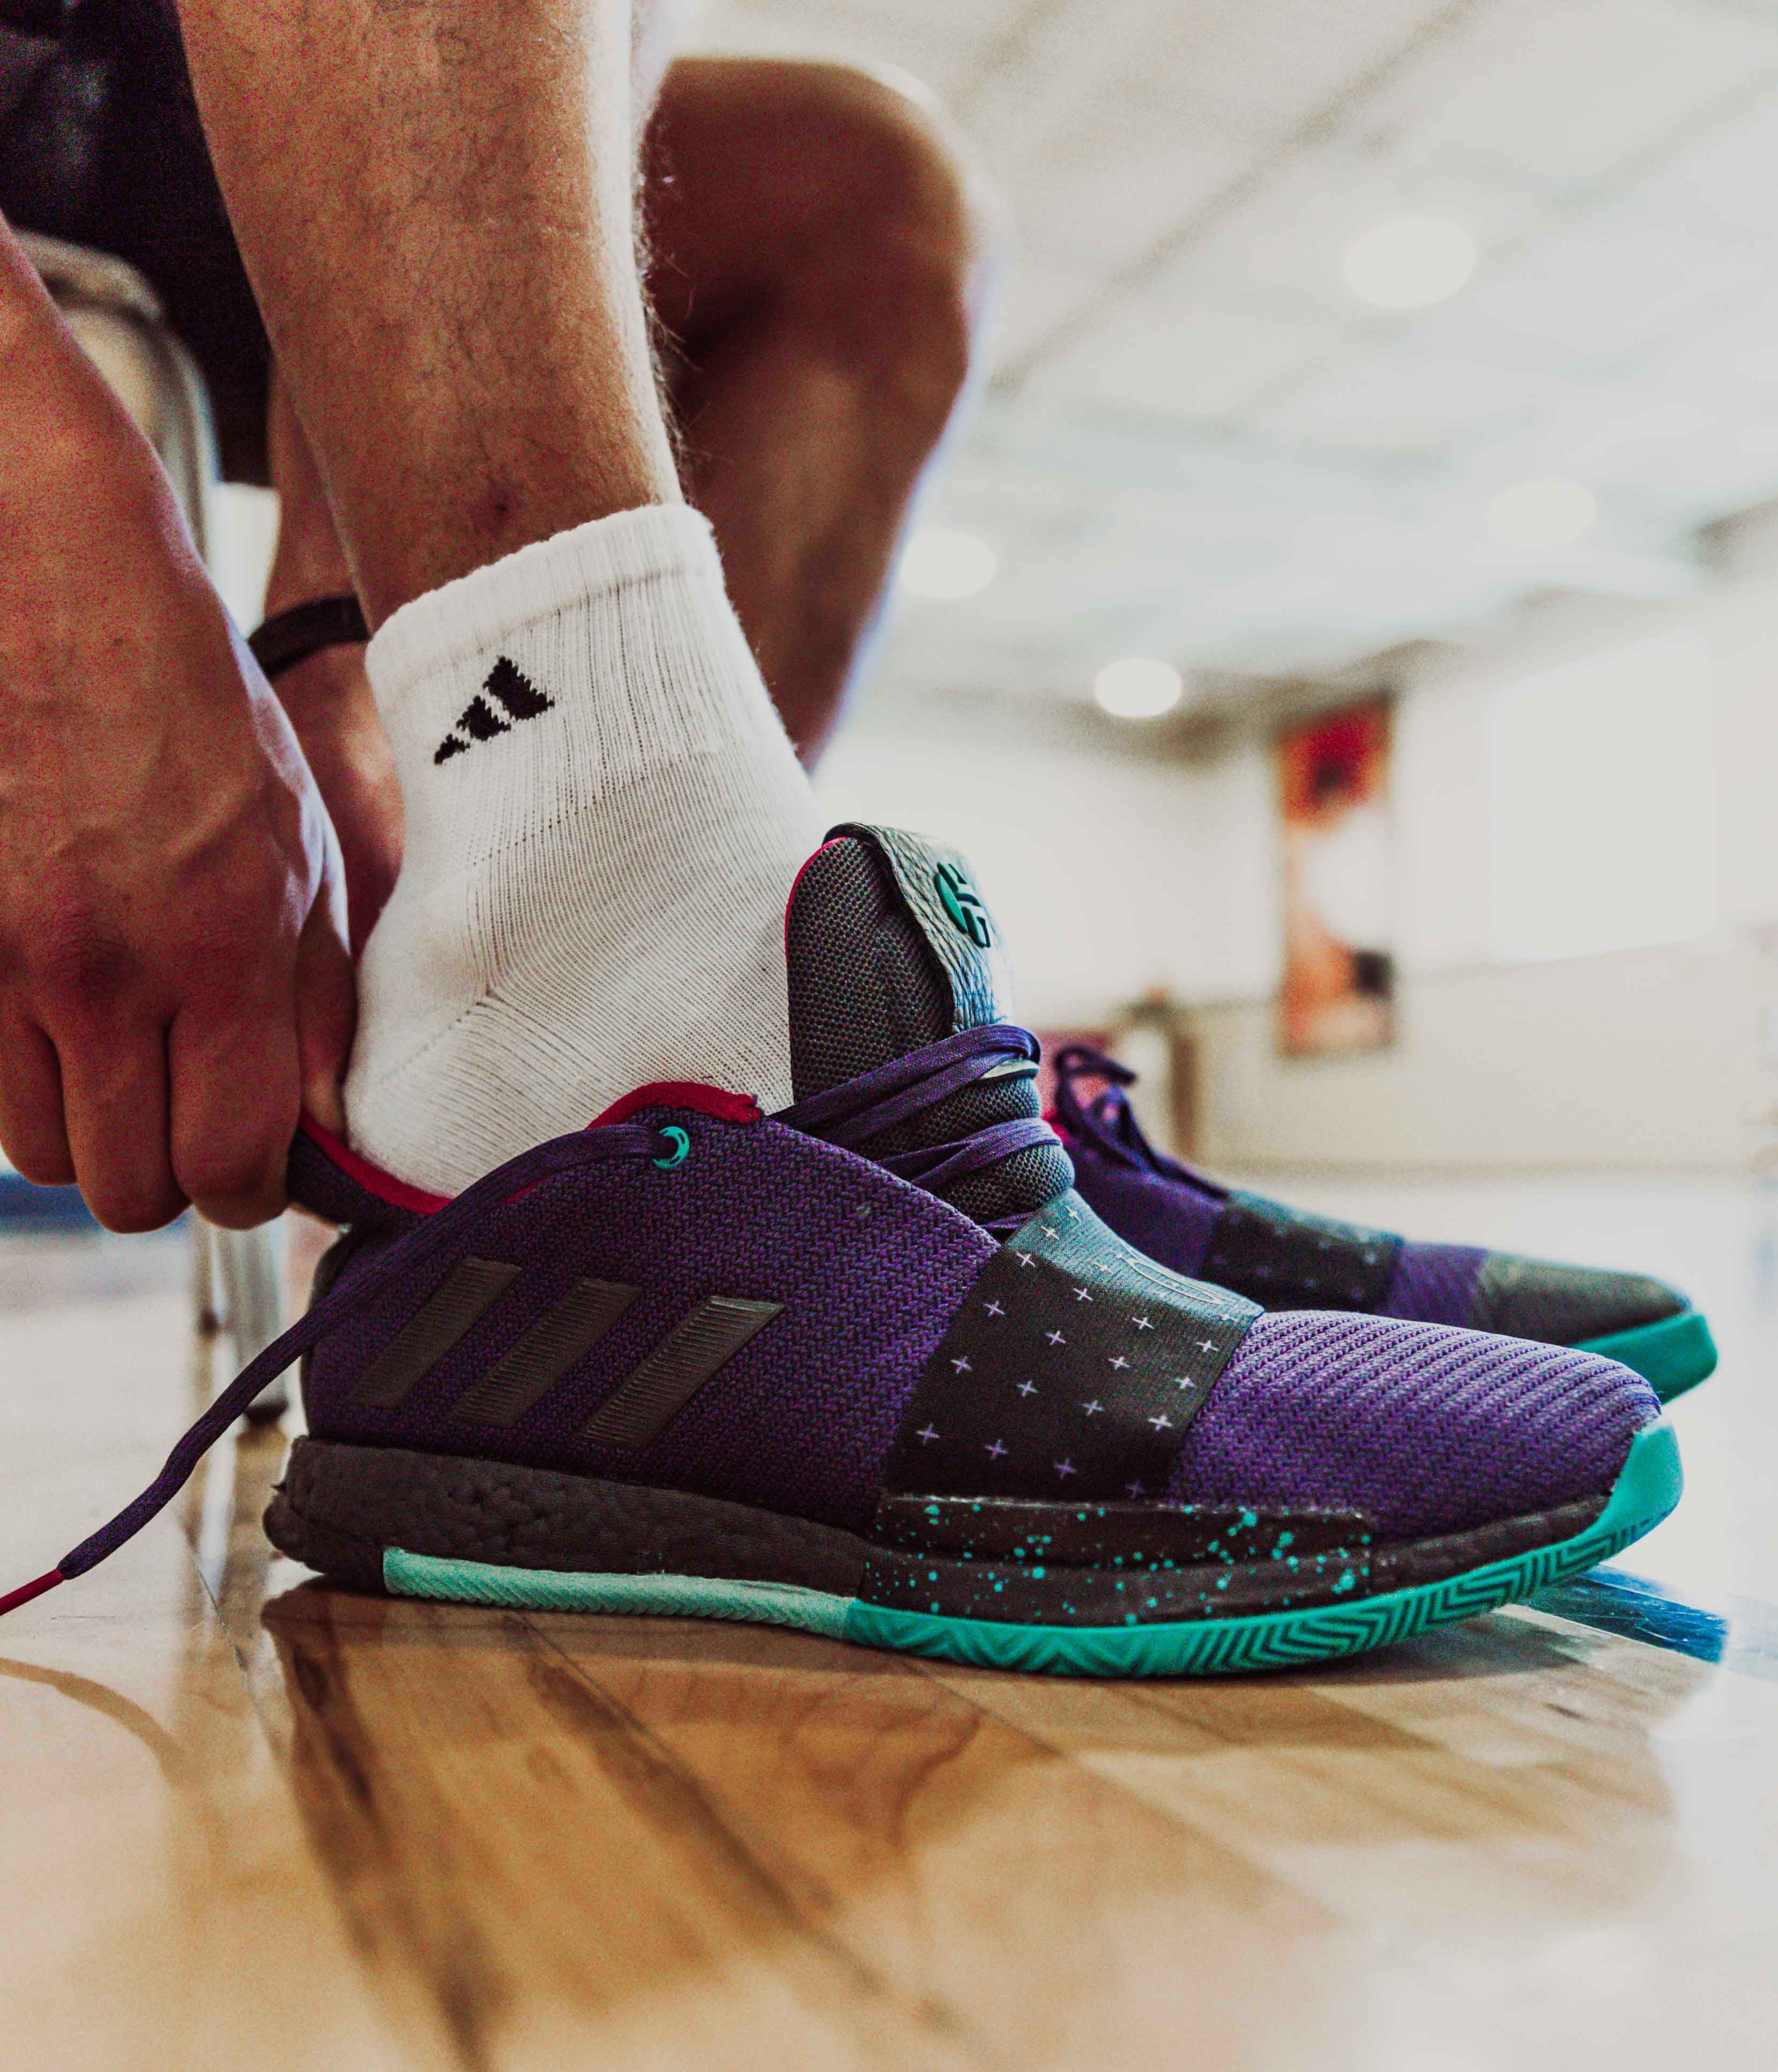 James harden shoes, Sneakers